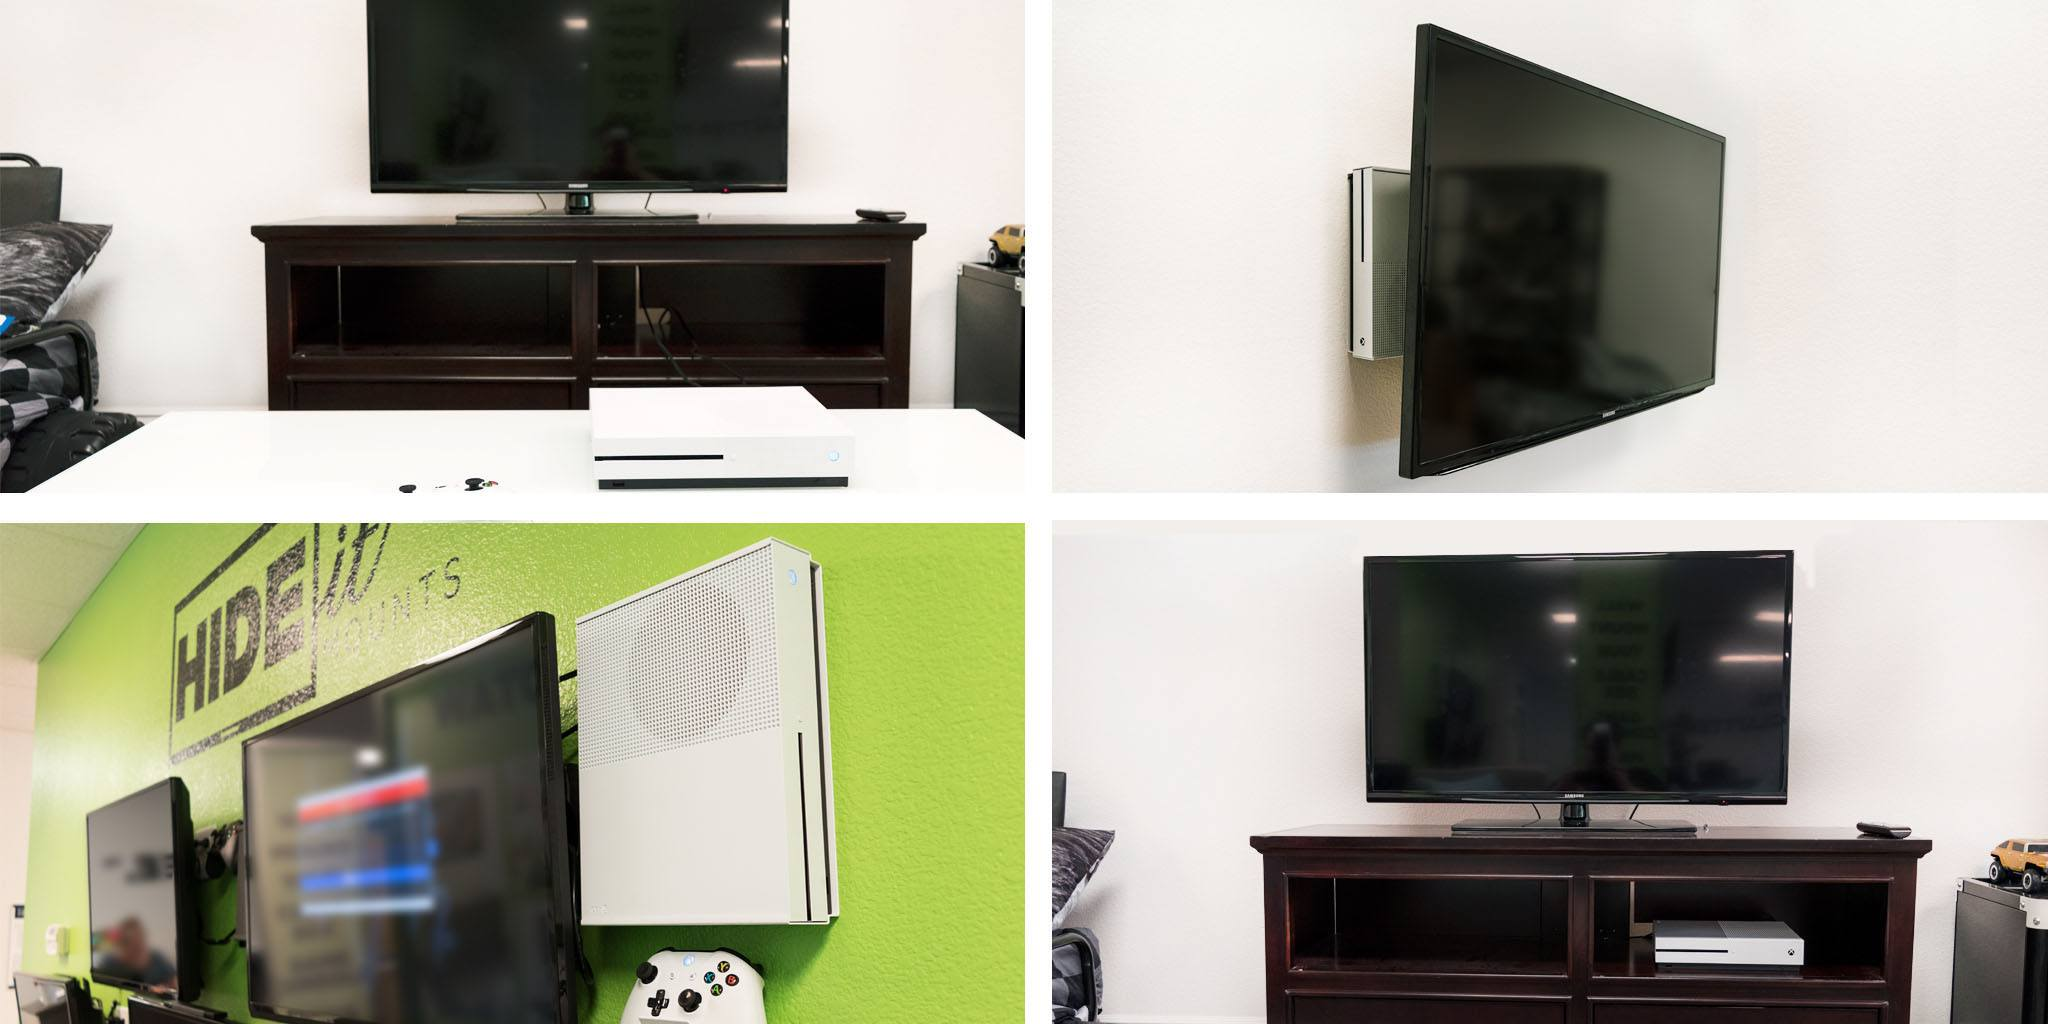 We Tested Our Xbox One S In A Few Common Setups: Flat On A Table, Displayed  On The Wall, On The Wall Behind The TV, And In A Media Cabinet.